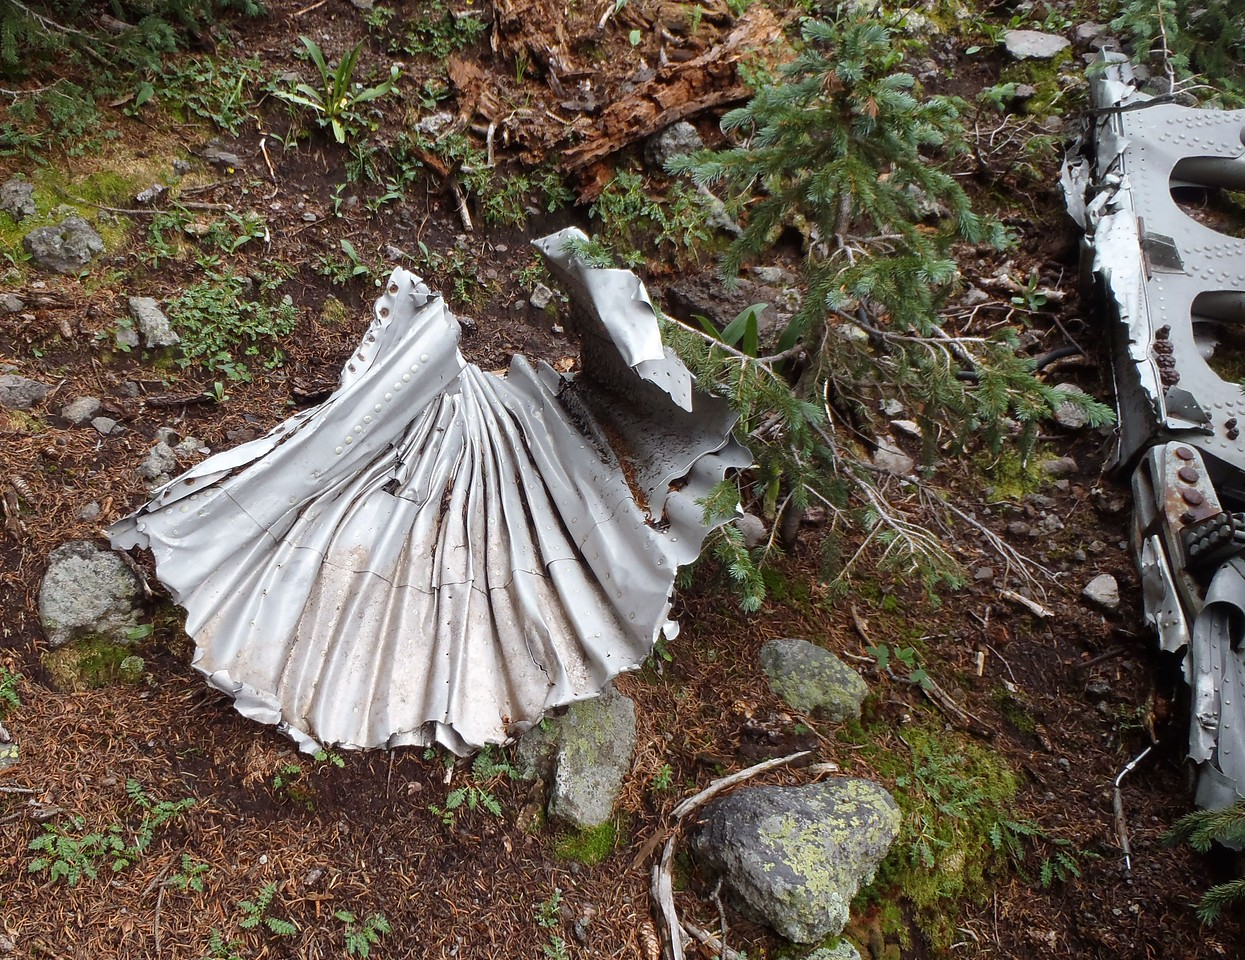 Sheets of aircraft aluminum skin from the B-17's wings and fuselage were found compressed into accordion shapes by impact.